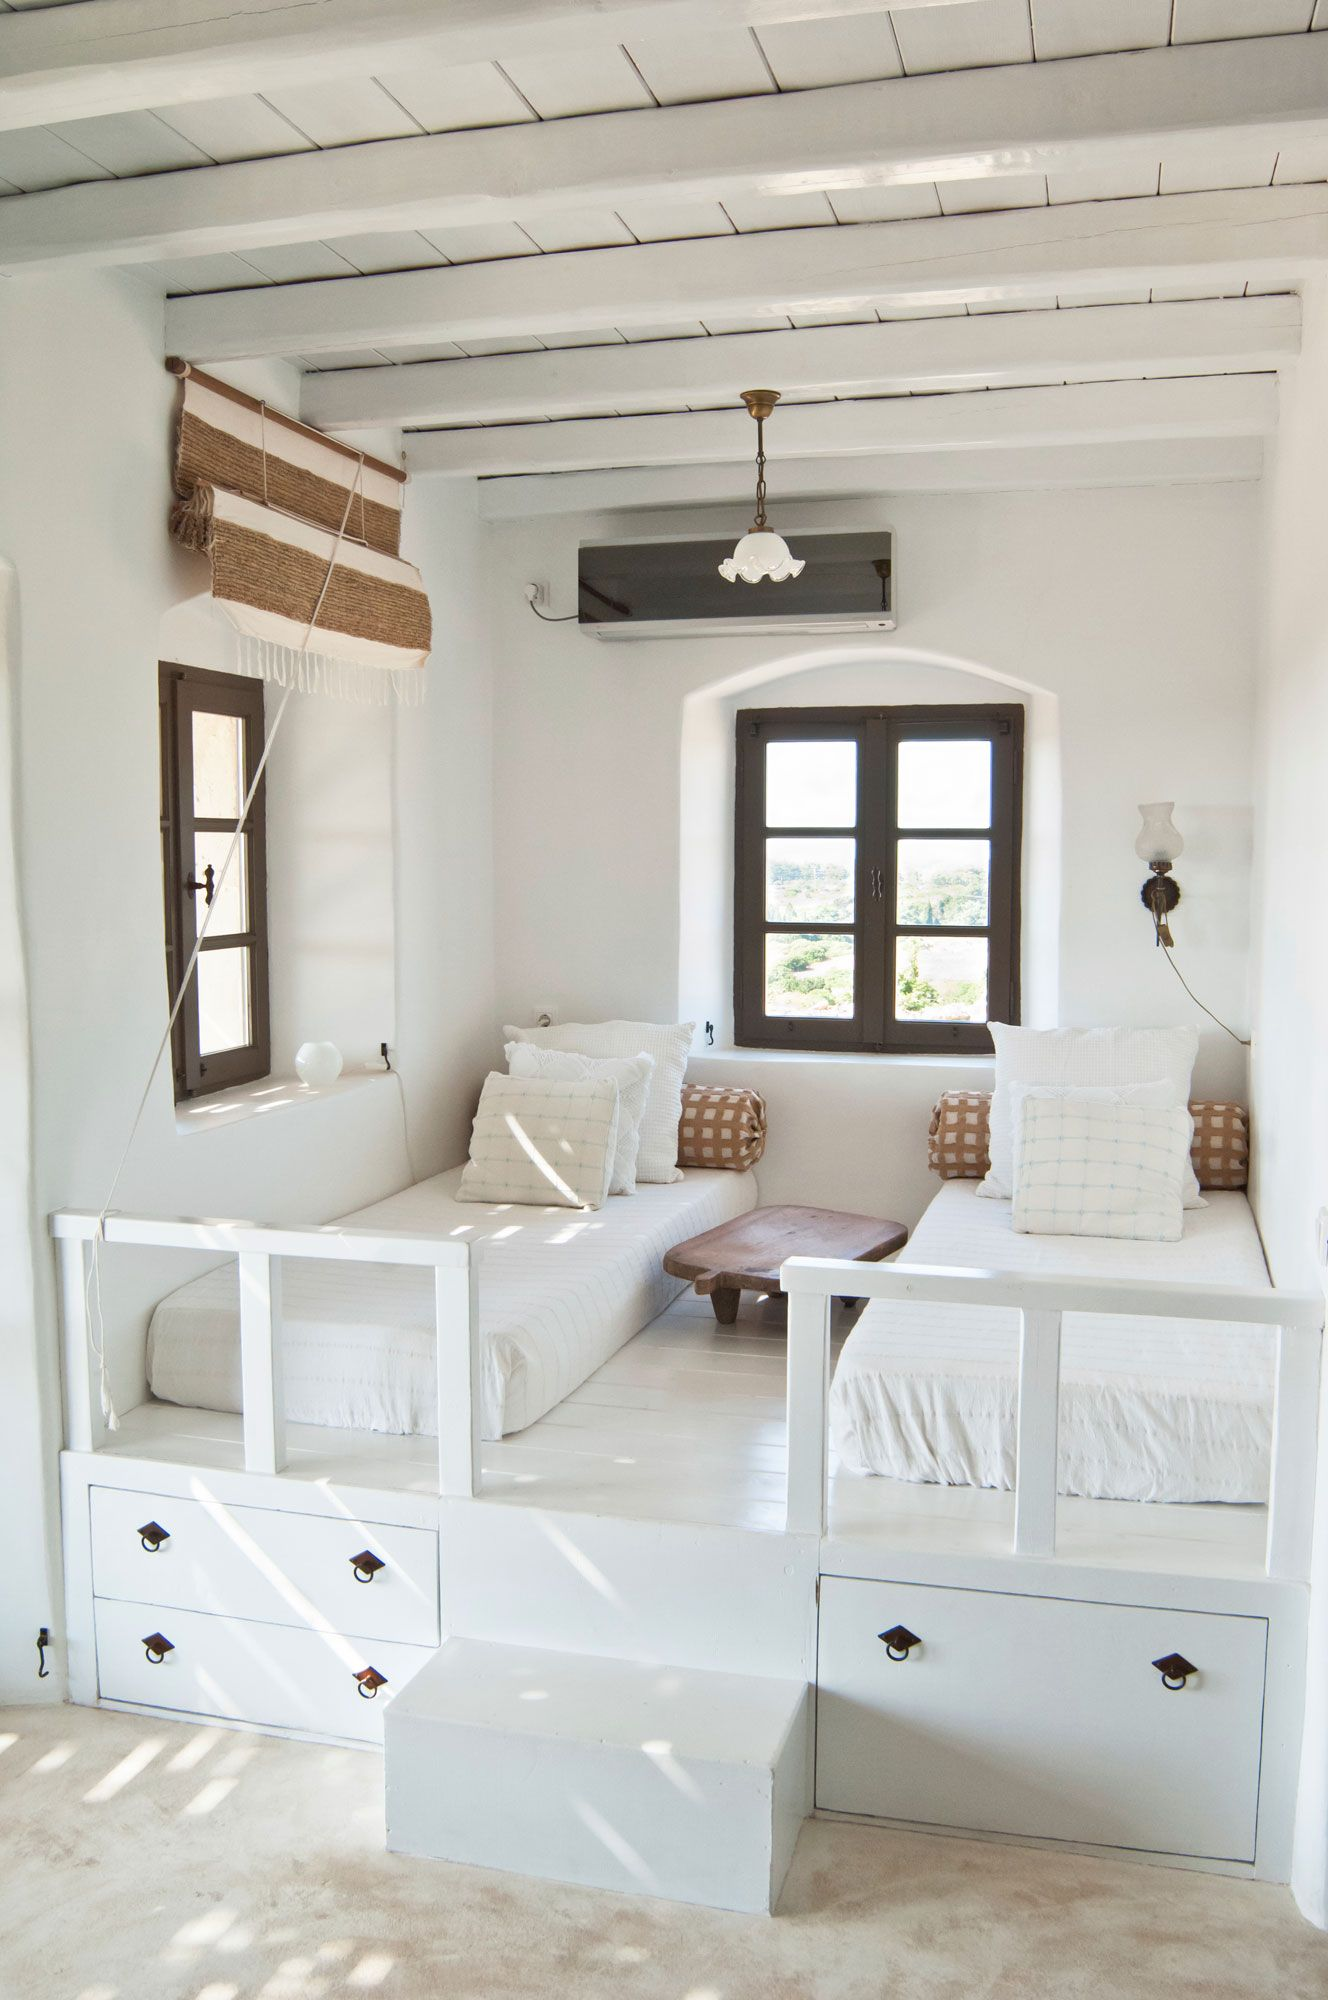 Ideas para decorar una casa en la playa hogarmania - Decorar casa barato ...